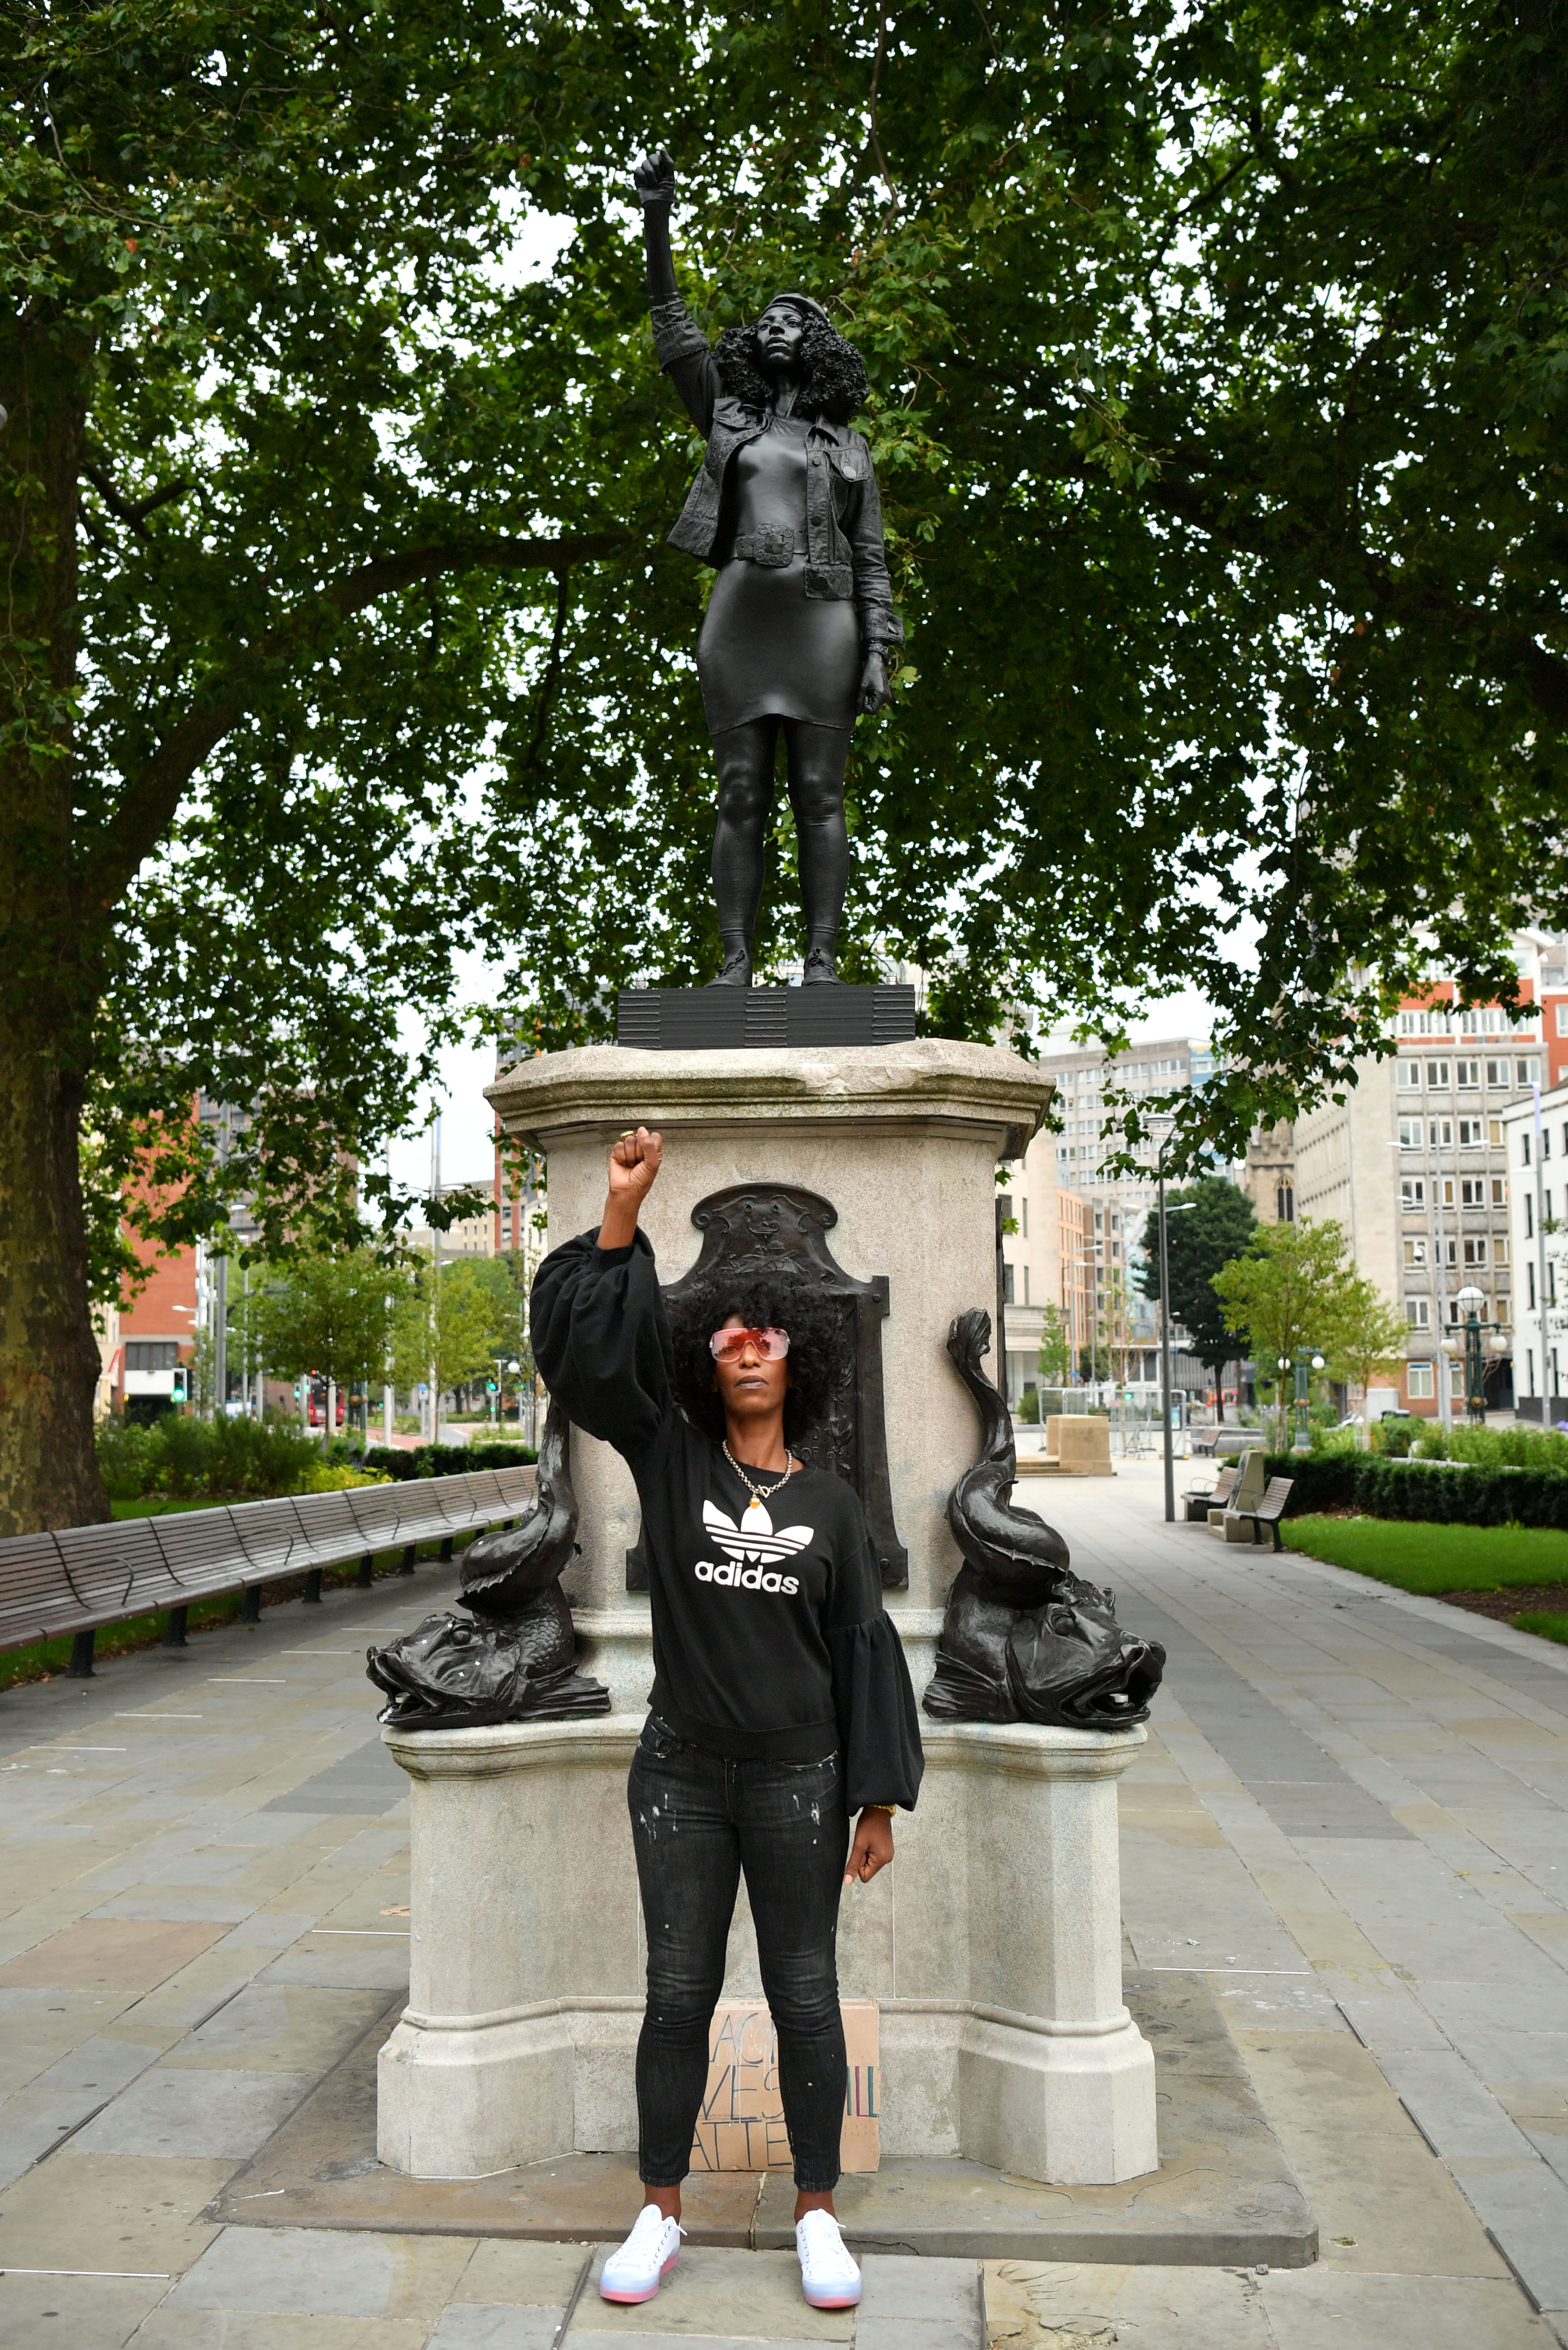 BRISTOL, ENGLAND - JULY 15: Black Lives Matter protestor Jen Reid poses for a photograph in front of a sculpture of herself, by local artist Marc Quinn, on the plinth where the Edward Colston statue used to stand on July 15, 2020 in Bristol, England. A statue of slave trader Edward Colston was pulled down and thrown into Bristol Harbour during Black Lives Matter protests sparked by the death of an African American man, George Floyd, while in the custody of Minneapolis police in the United States of America. The Mayor of Bristol has since announced the setting up of a commission of historians and academics to reassess Bristol's landmarks and buildings that feature the name of Colston and others who made fortunes in trades linked to slavery. (Photo by Matthew Horwood/Getty Images)